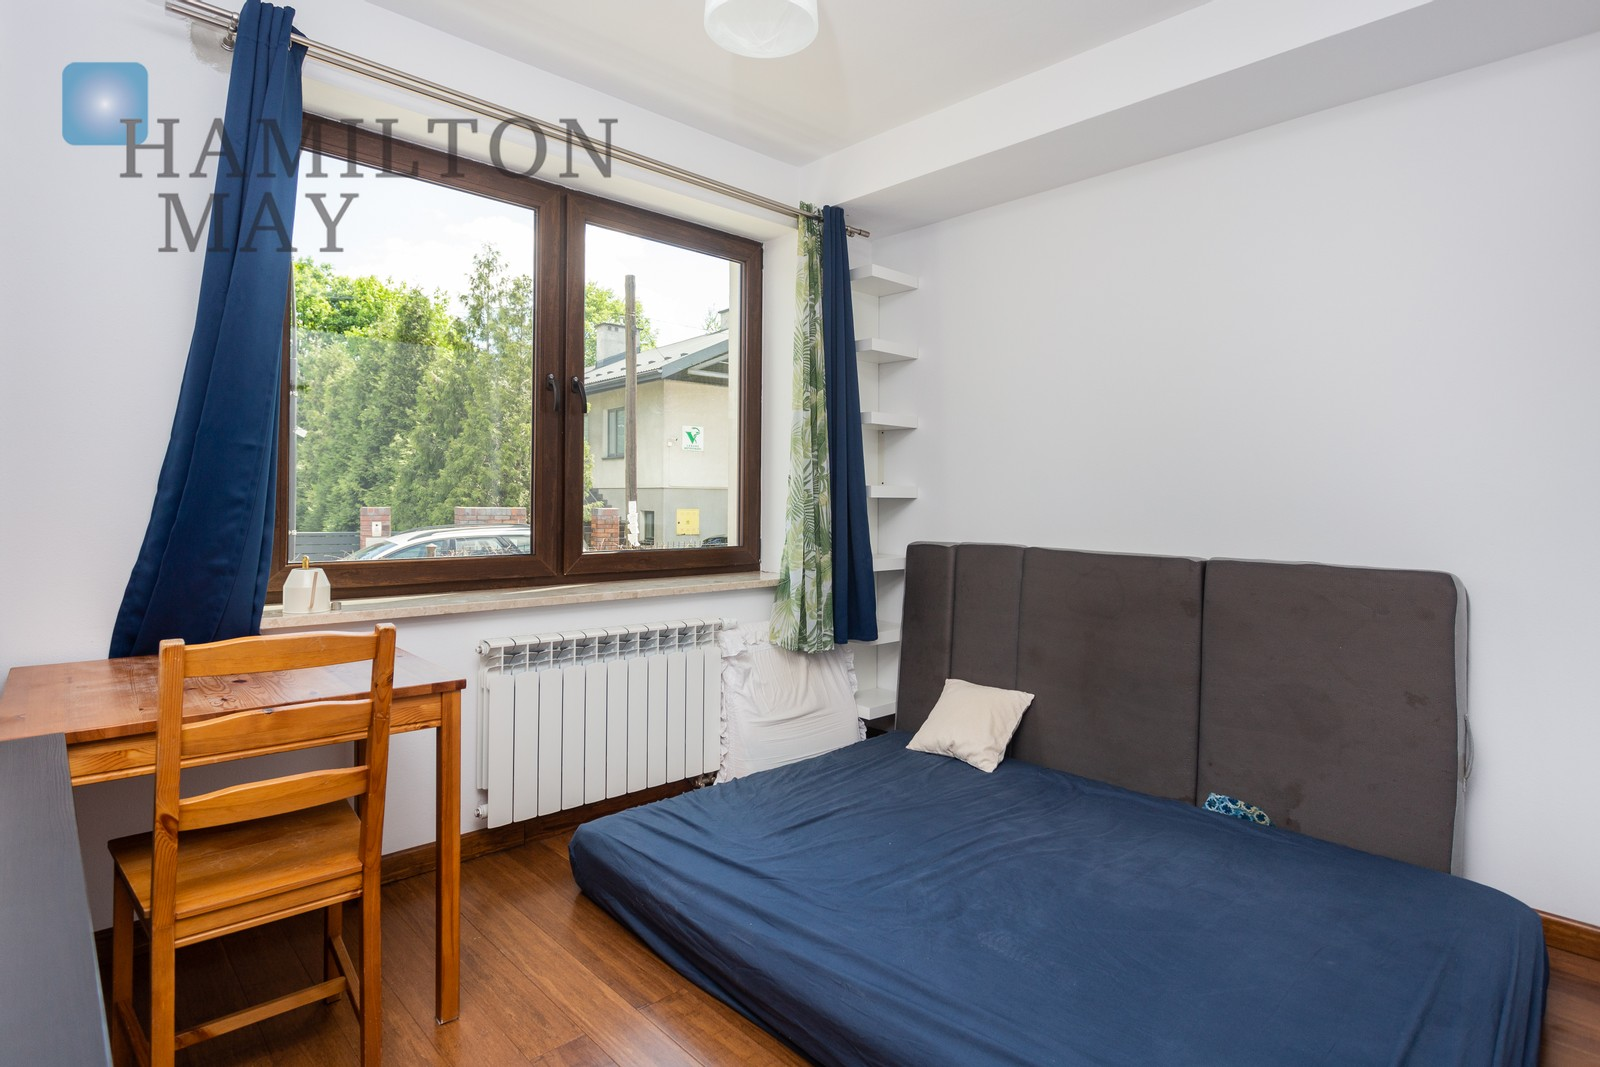 A modern detached house available for sale in a quiet, well-connected area in the center of Krakow Krakow for sale